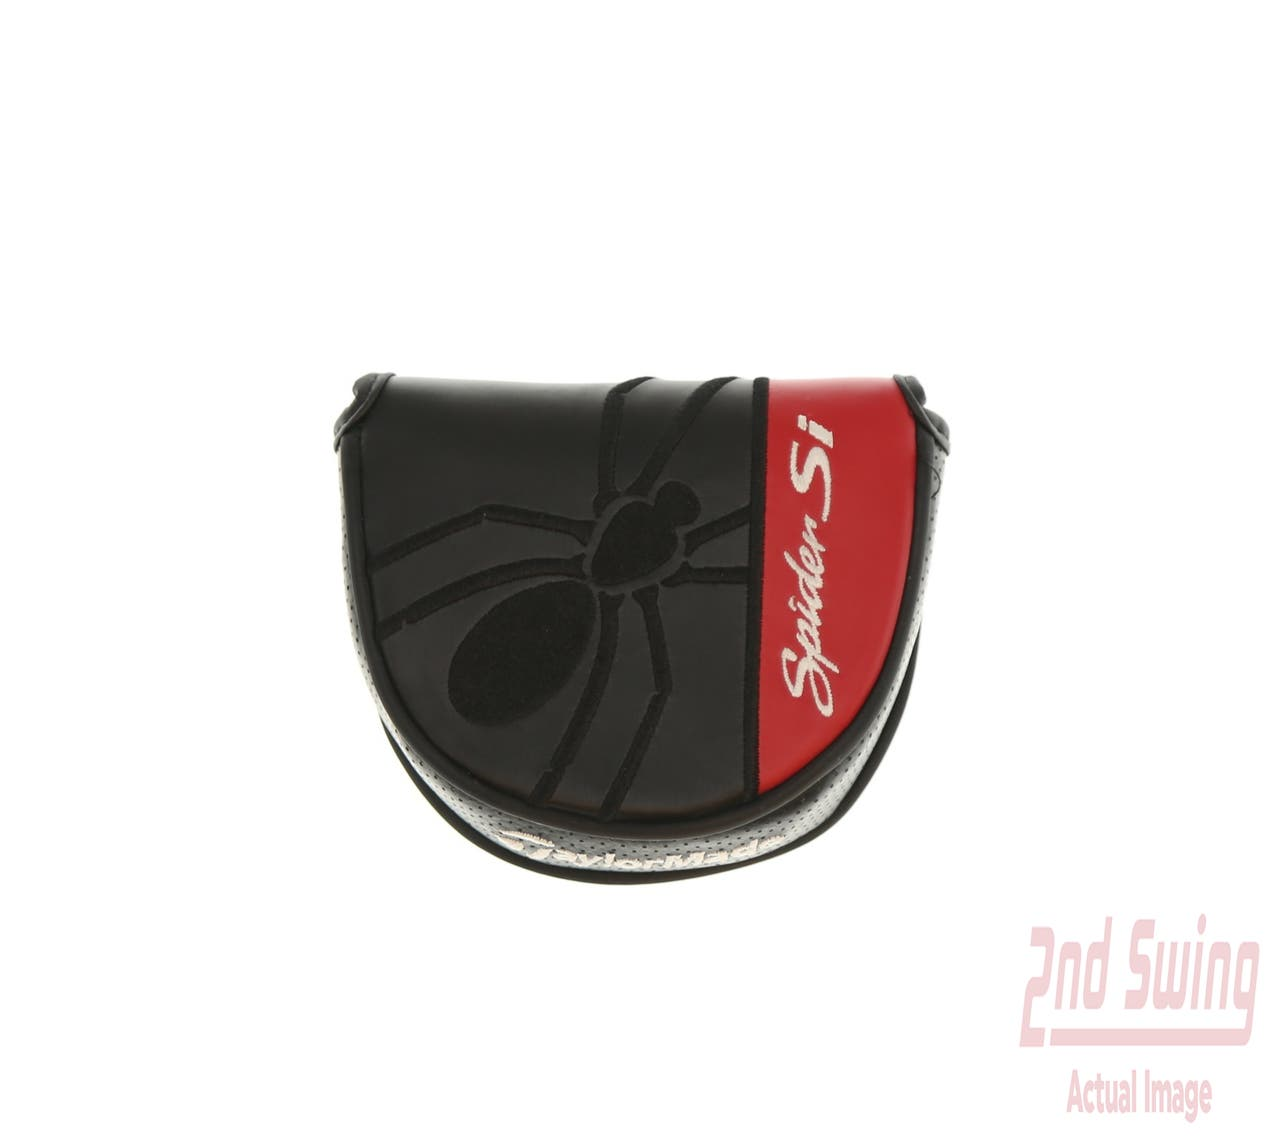 TaylorMade Spider Si Mallet Putter Headcover Black/Red/White